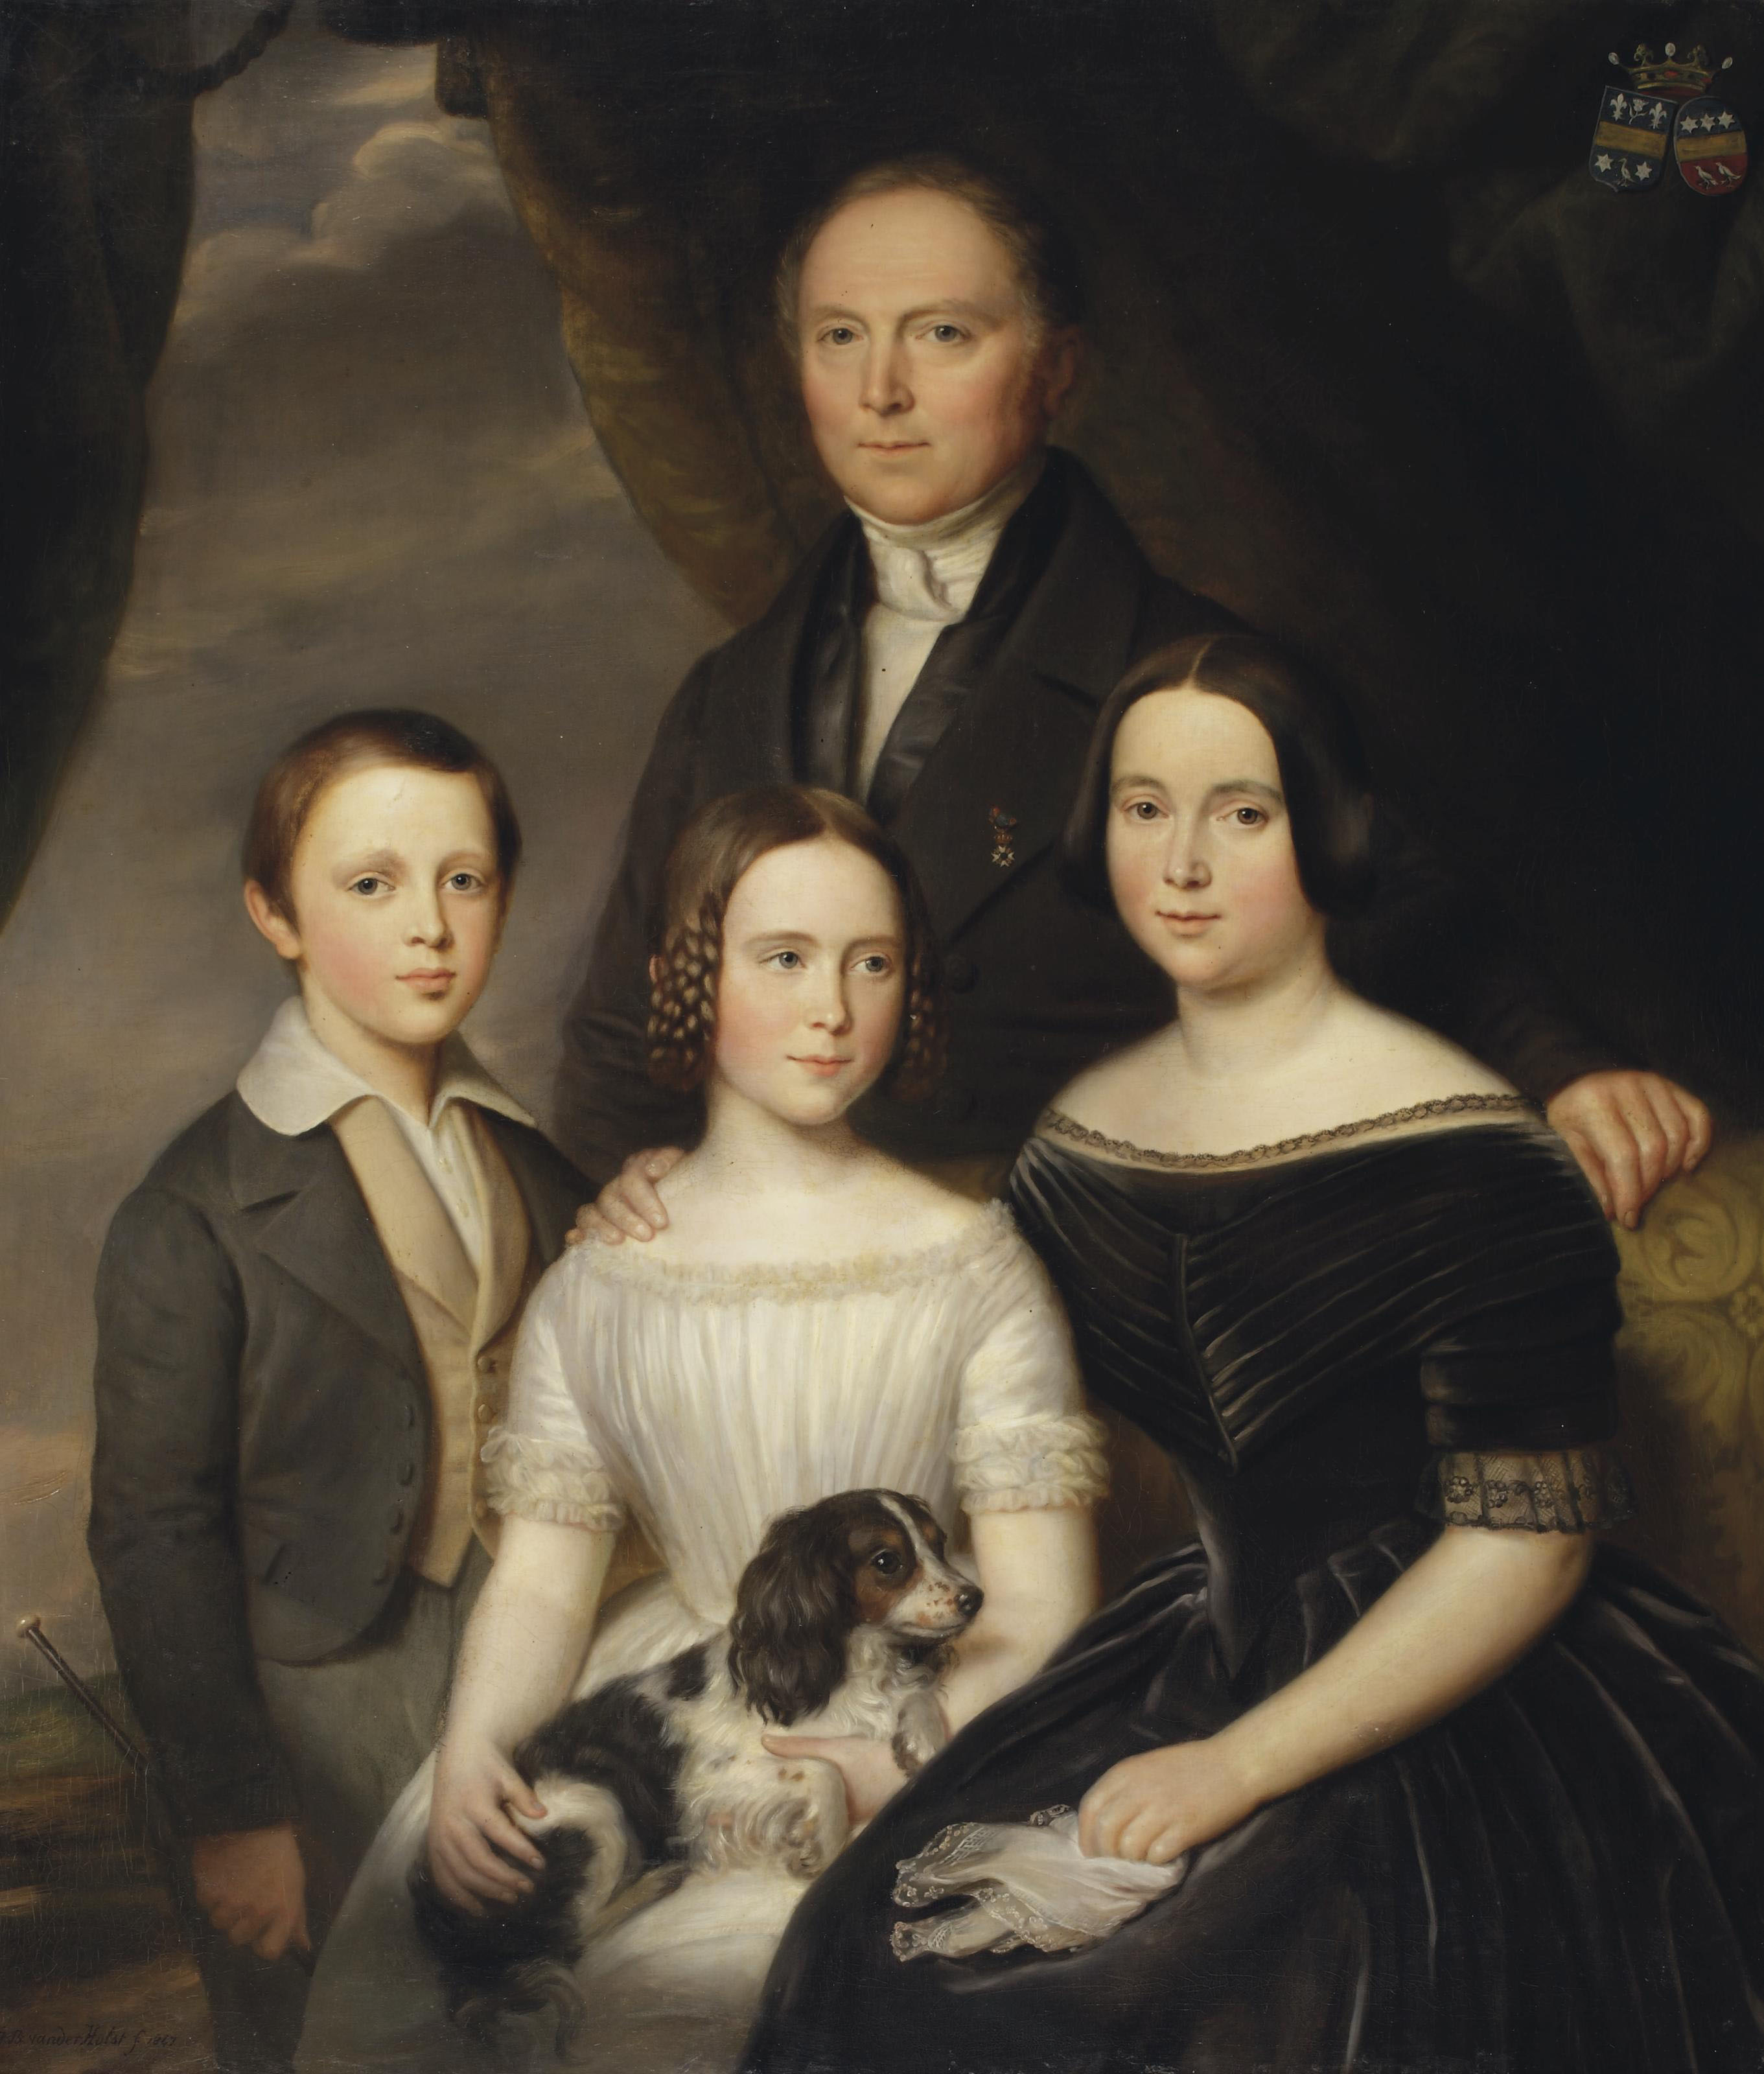 Portrait of Godefridus Andreas Melord van Middelharnis (1792-1870), standing, together with his wife Anna Josephina Wittert van Hoogland (1805-1878), seated on a couch with their children Everardus Bonefacius Andreas Melort van Middelharnis (1835-1878) and Louisa Gijsberta Cornelia (1833-1898), a garden landscape beyond